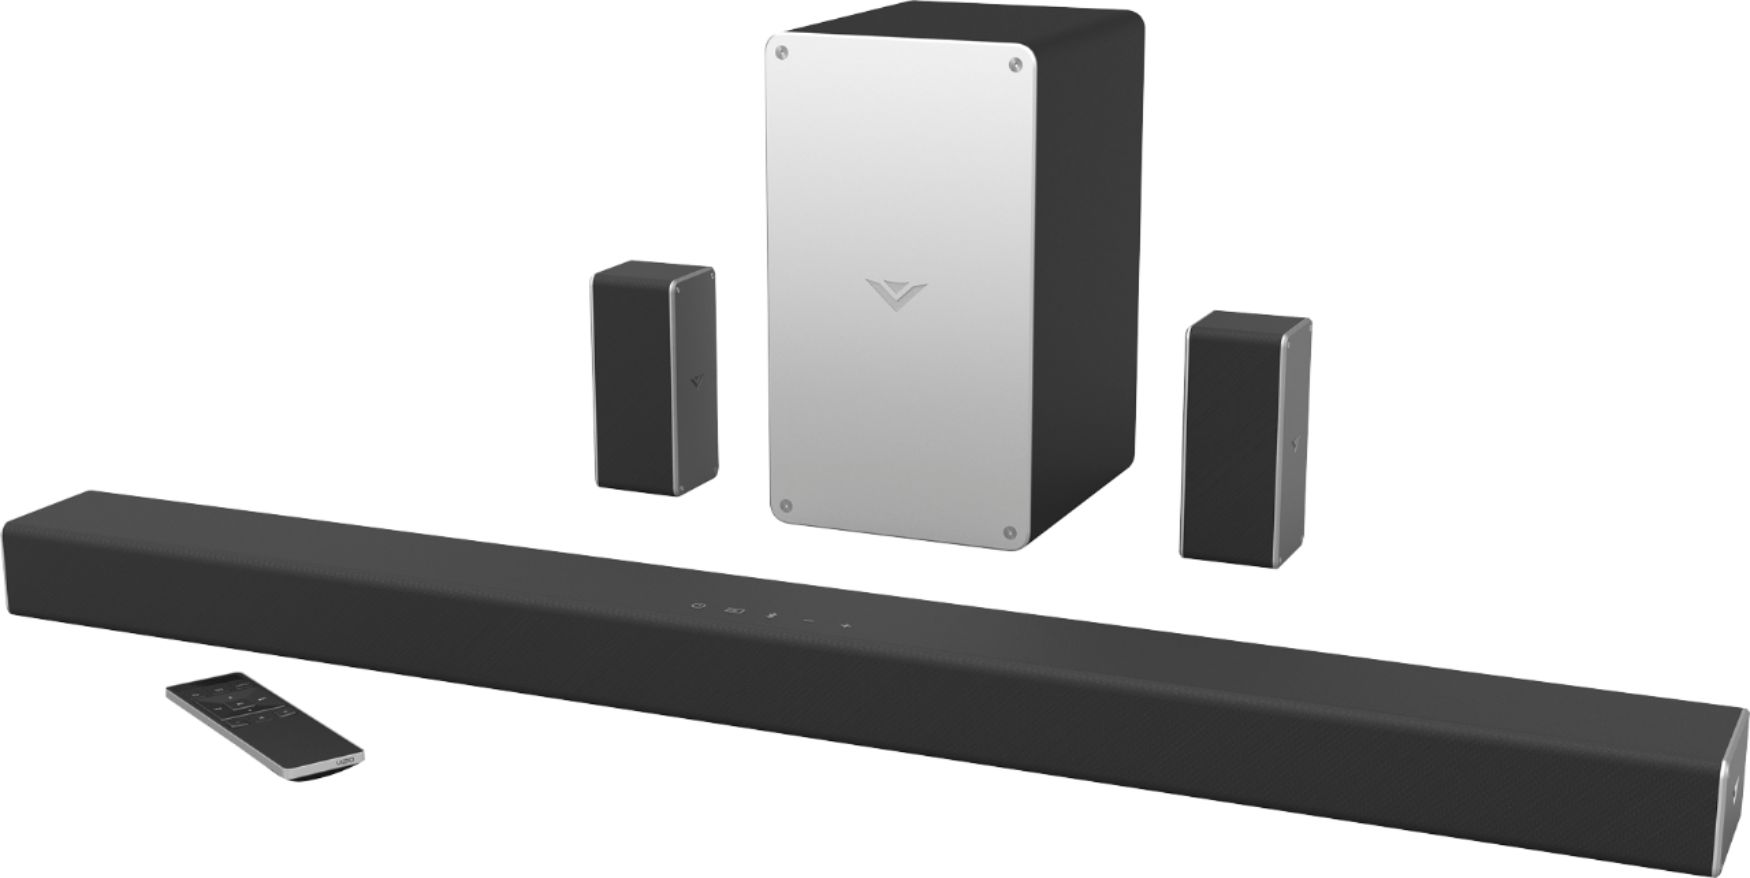 hight resolution of vizio smartcast 5 1 channel sound bar system with 5 1 4 wireless subwoofer black sb3651 e6 best buy